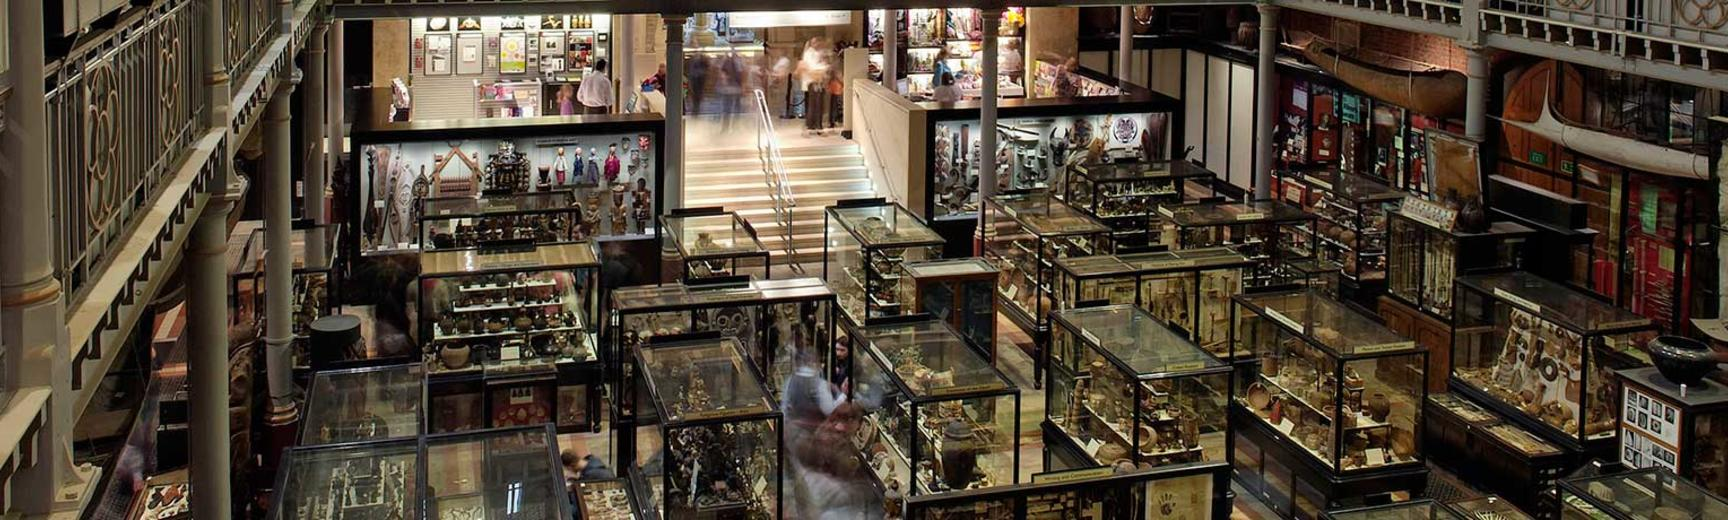 Gallery View, Pitt Rivers Musuem